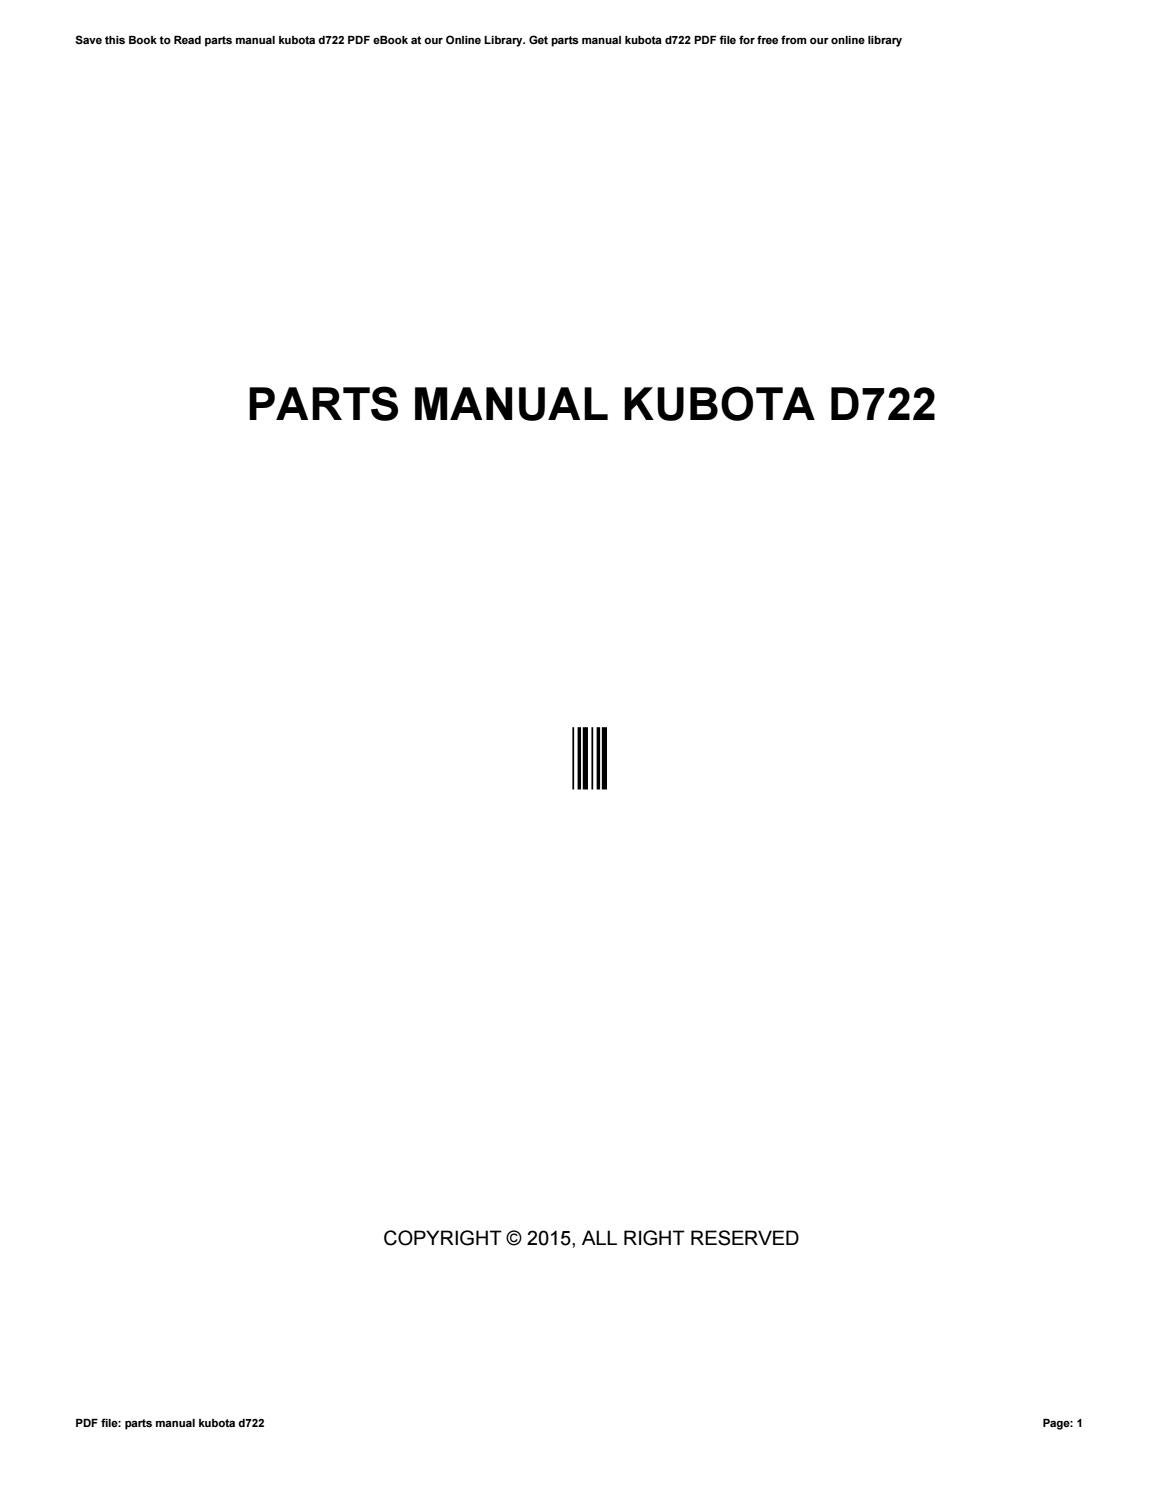 kubota g2160 wiring diagram bmw e38 stereo mnl 7679 parts manual for d722 2019 ebook library